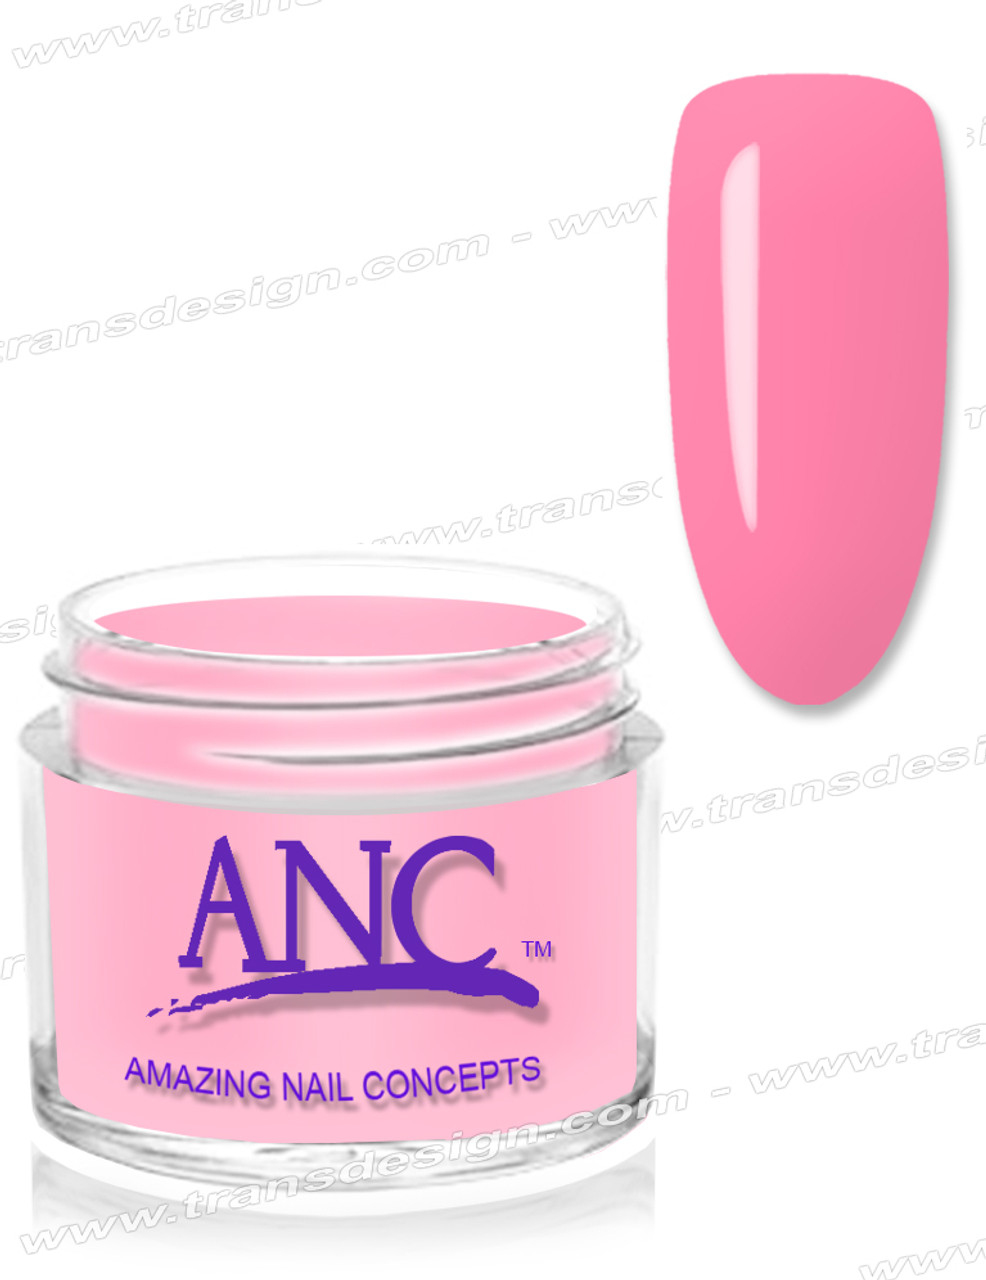 Awe Inspiring Anc Dip Powder 5 Birthday Cake Shot 2Oz Tdi Inc Funny Birthday Cards Online Fluifree Goldxyz